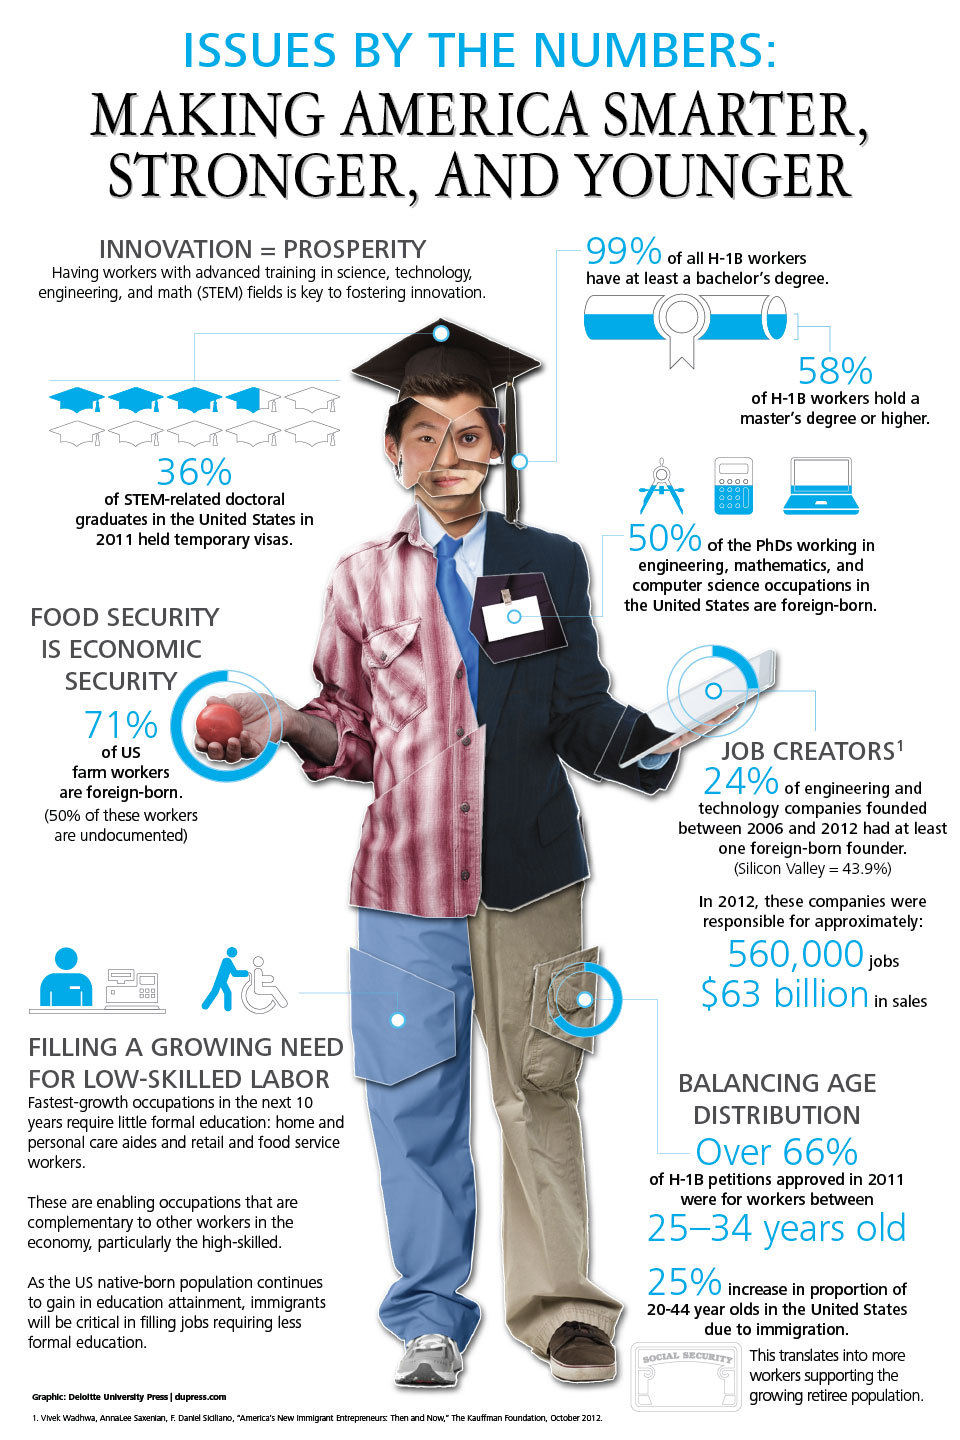 Making America Smarter, Stronger, and Younger infographic